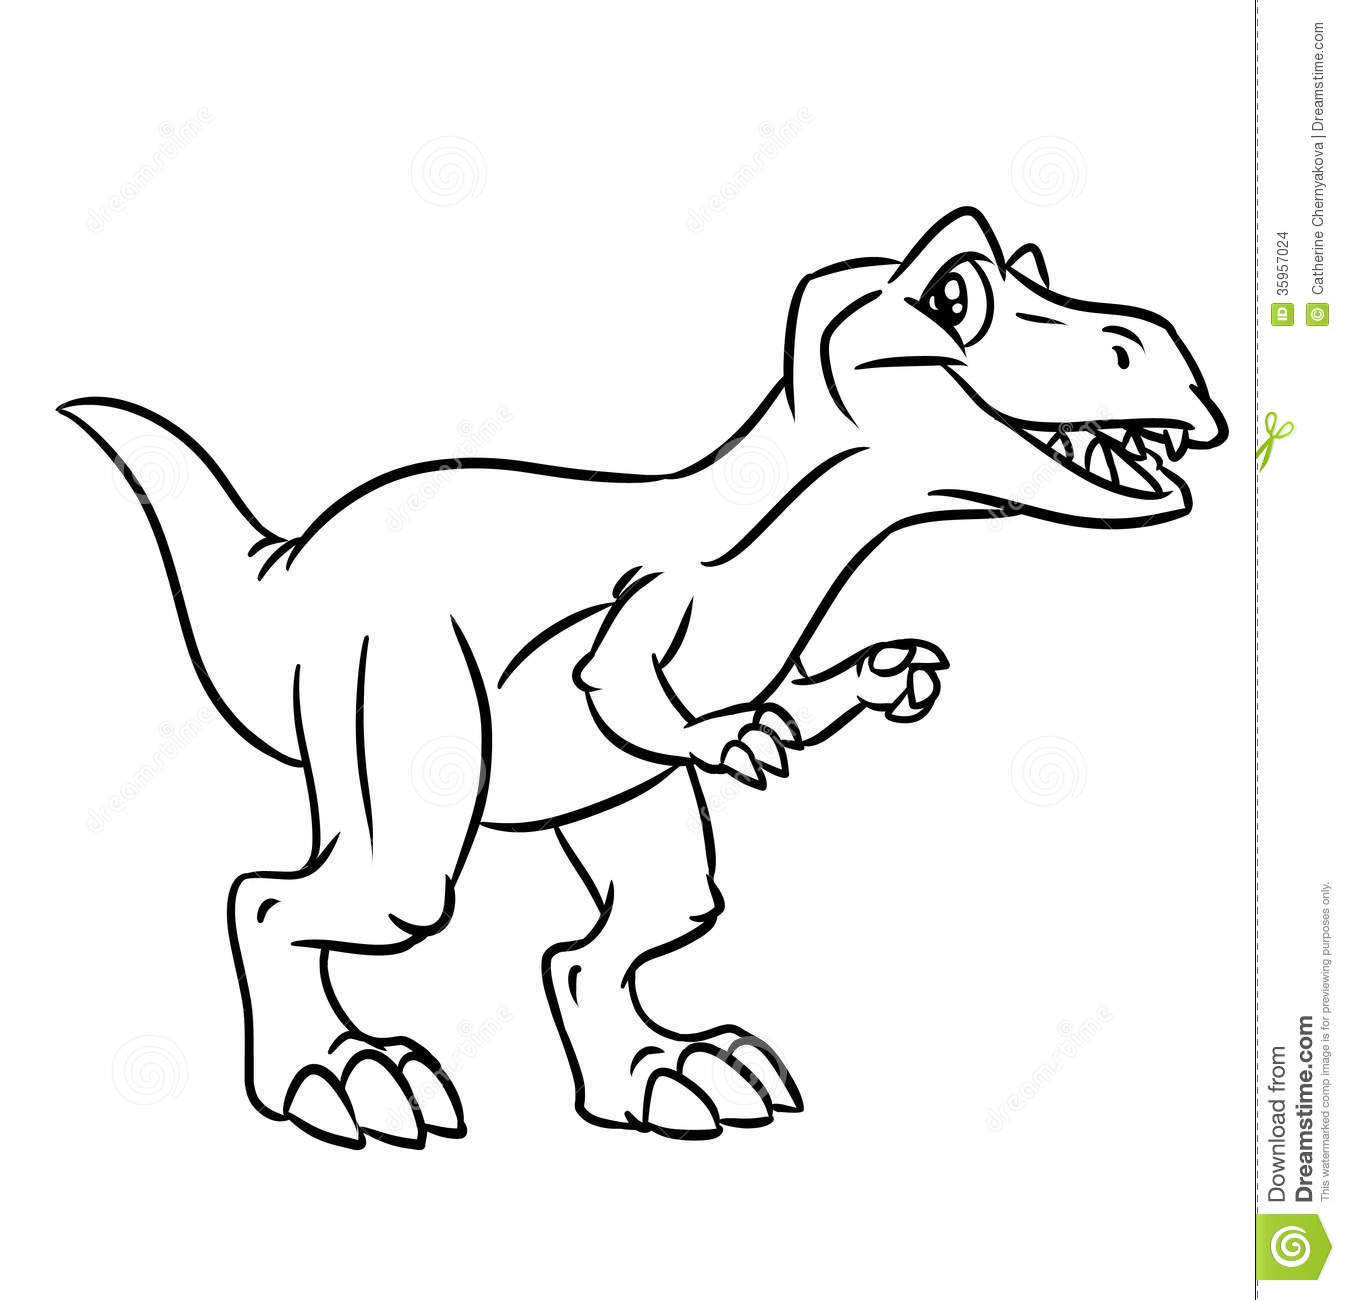 dinosaur coloring pages stock images image 35957024